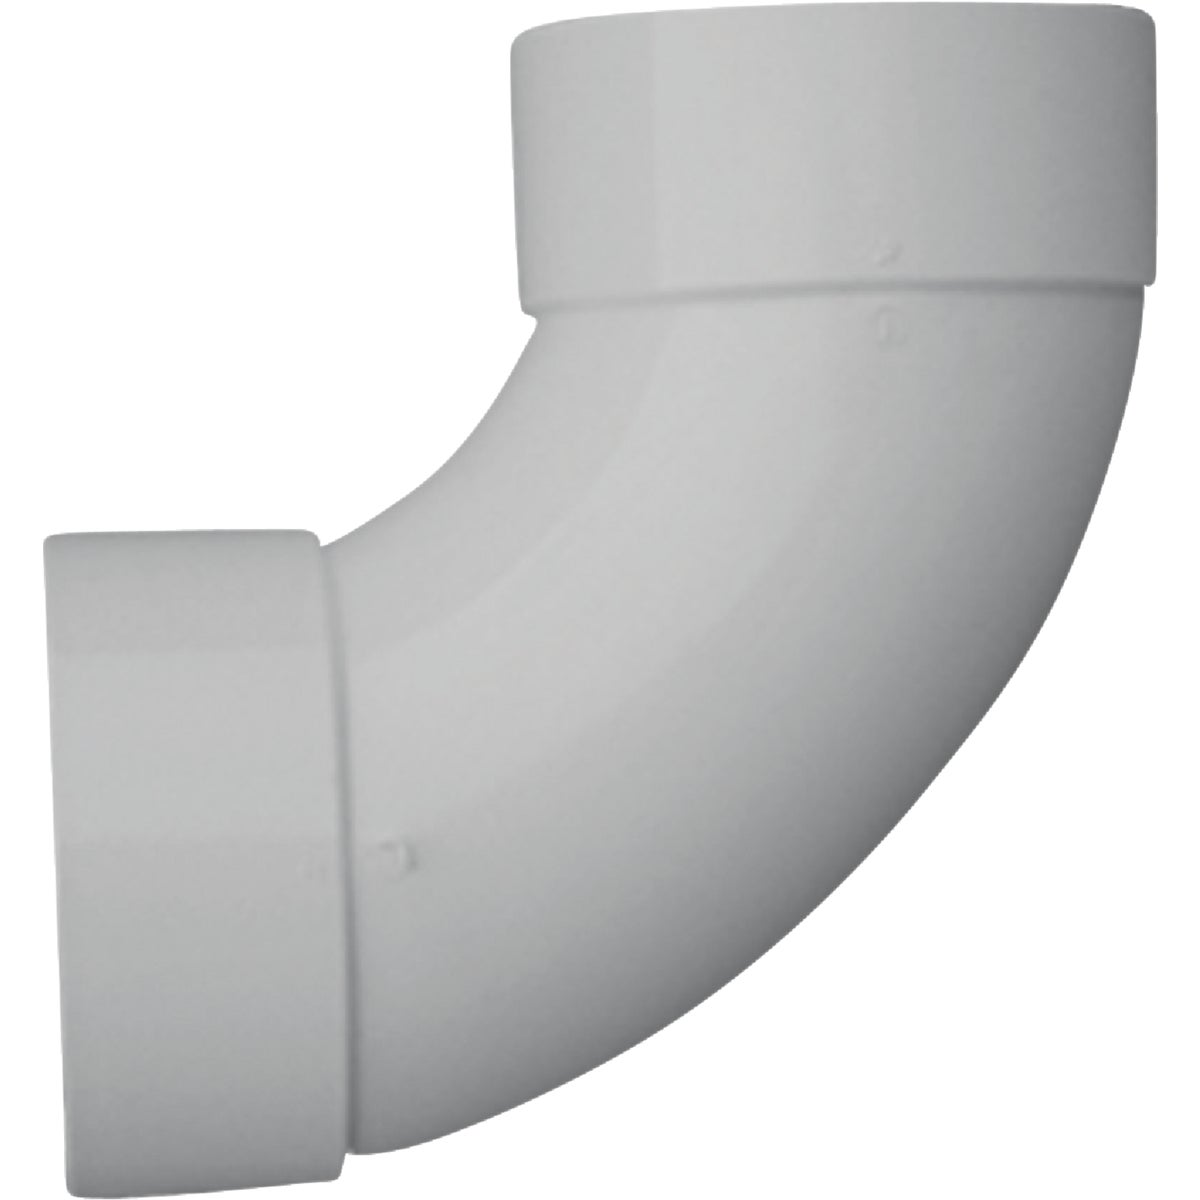 "6"" 90D S&D PVC SAN ELBOW - 42860 by Genova Inc"